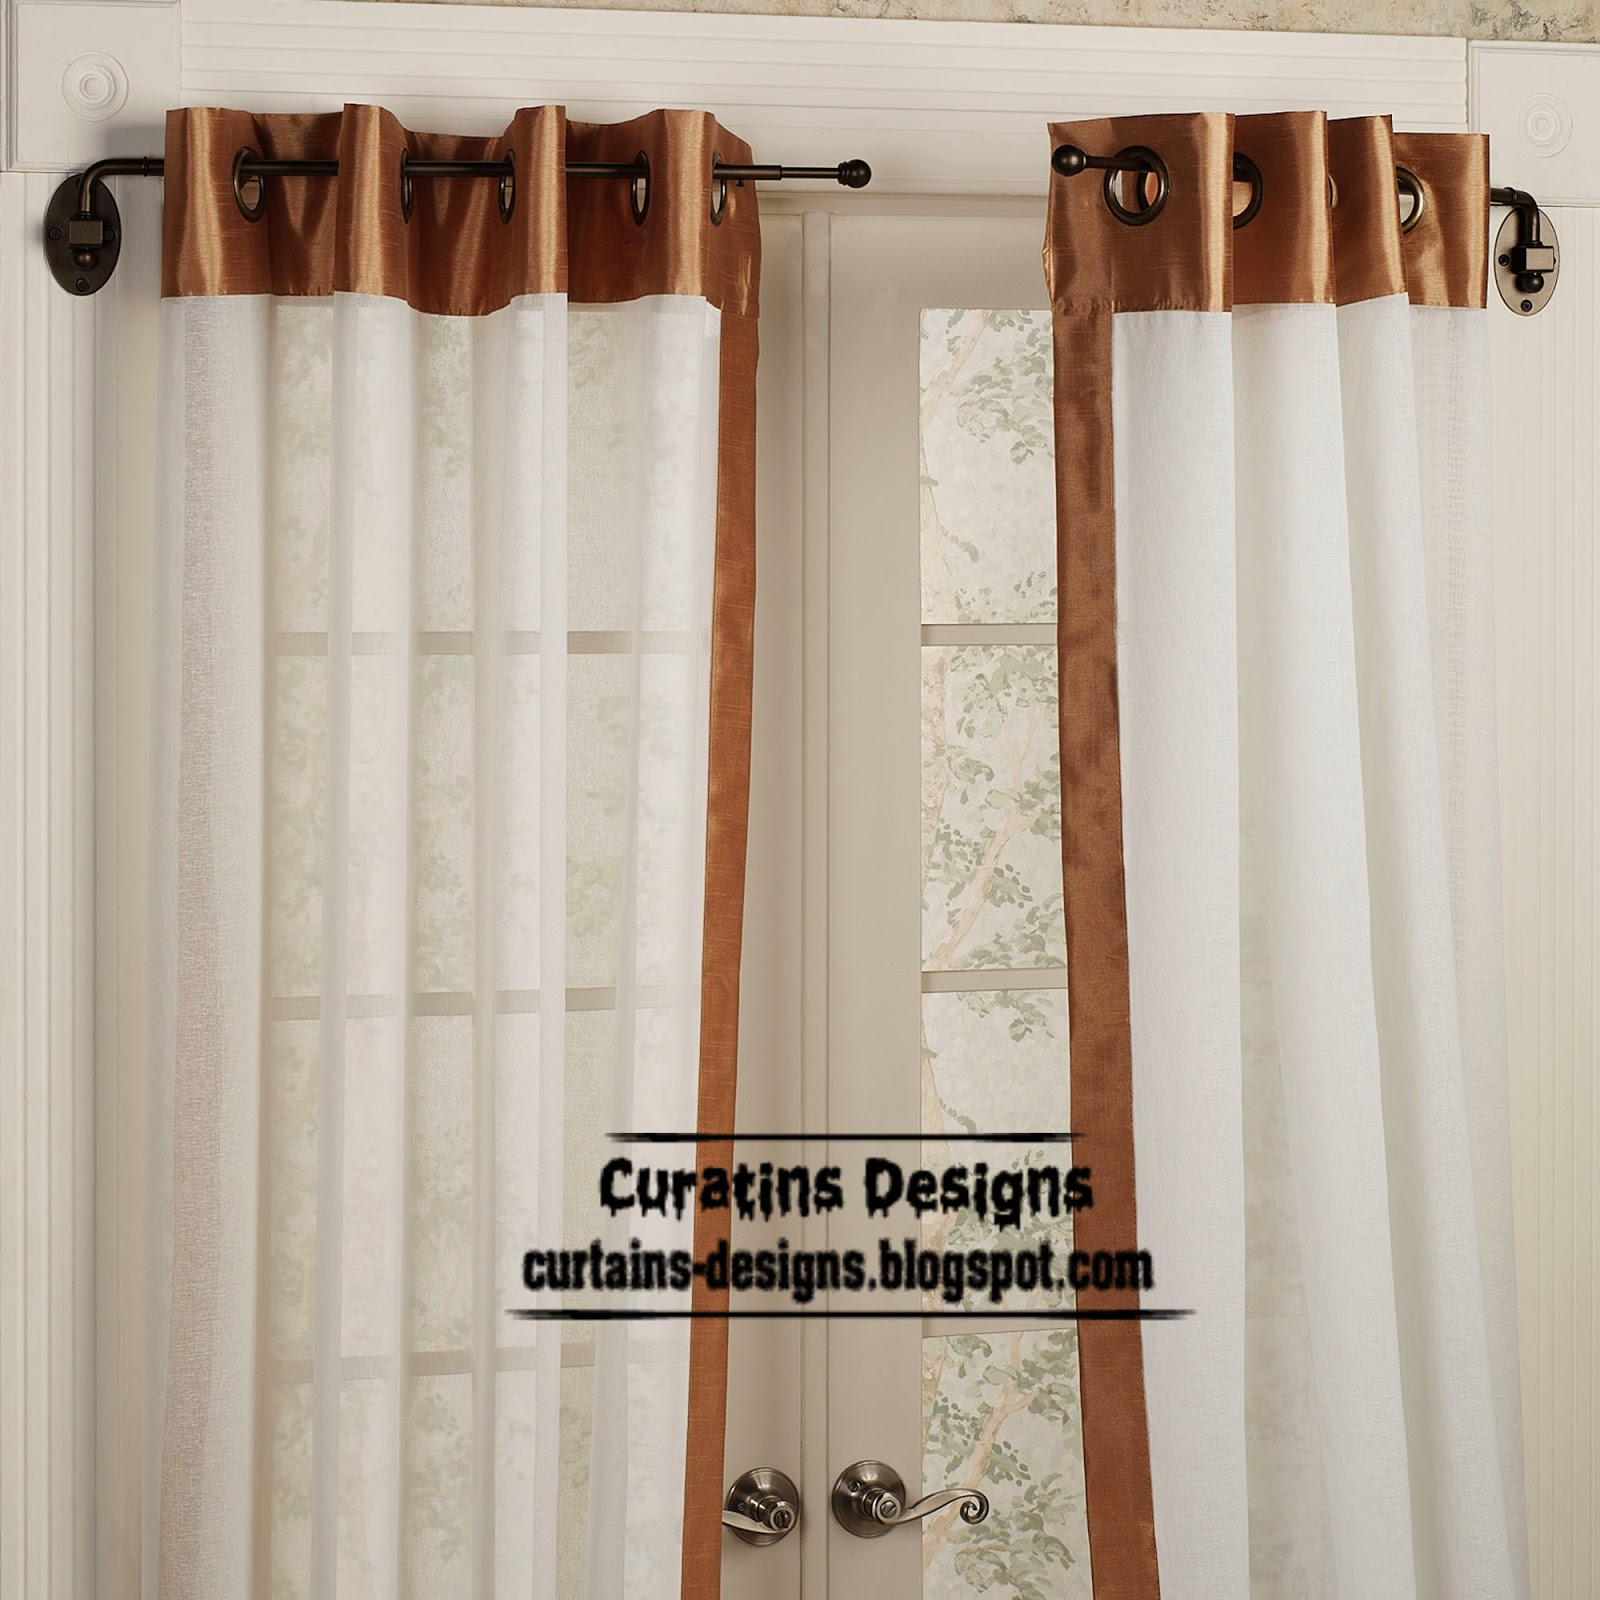 Swing arm curtain rod, the best window covering ideas